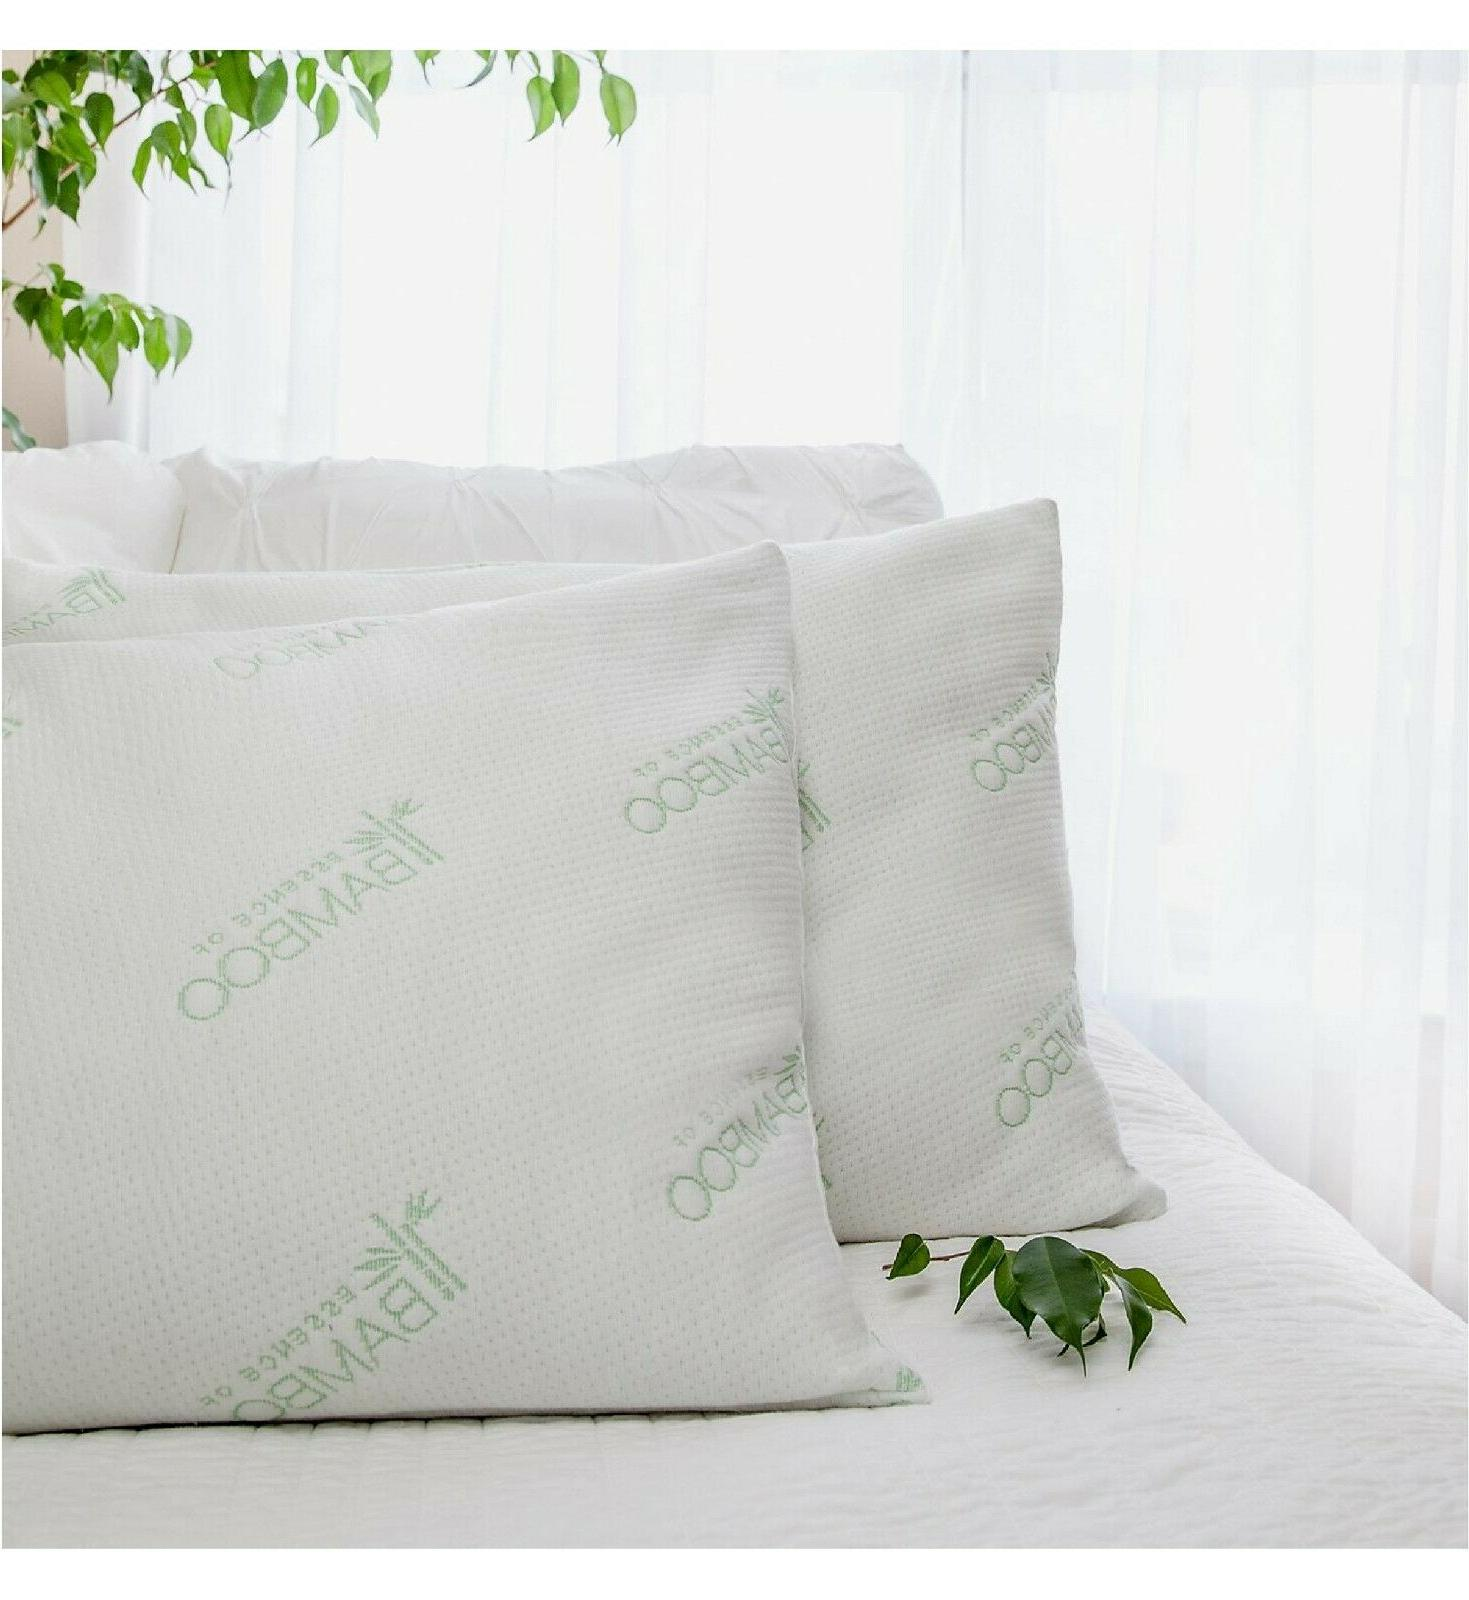 2-pack Pillows, - FREE SHIPPING